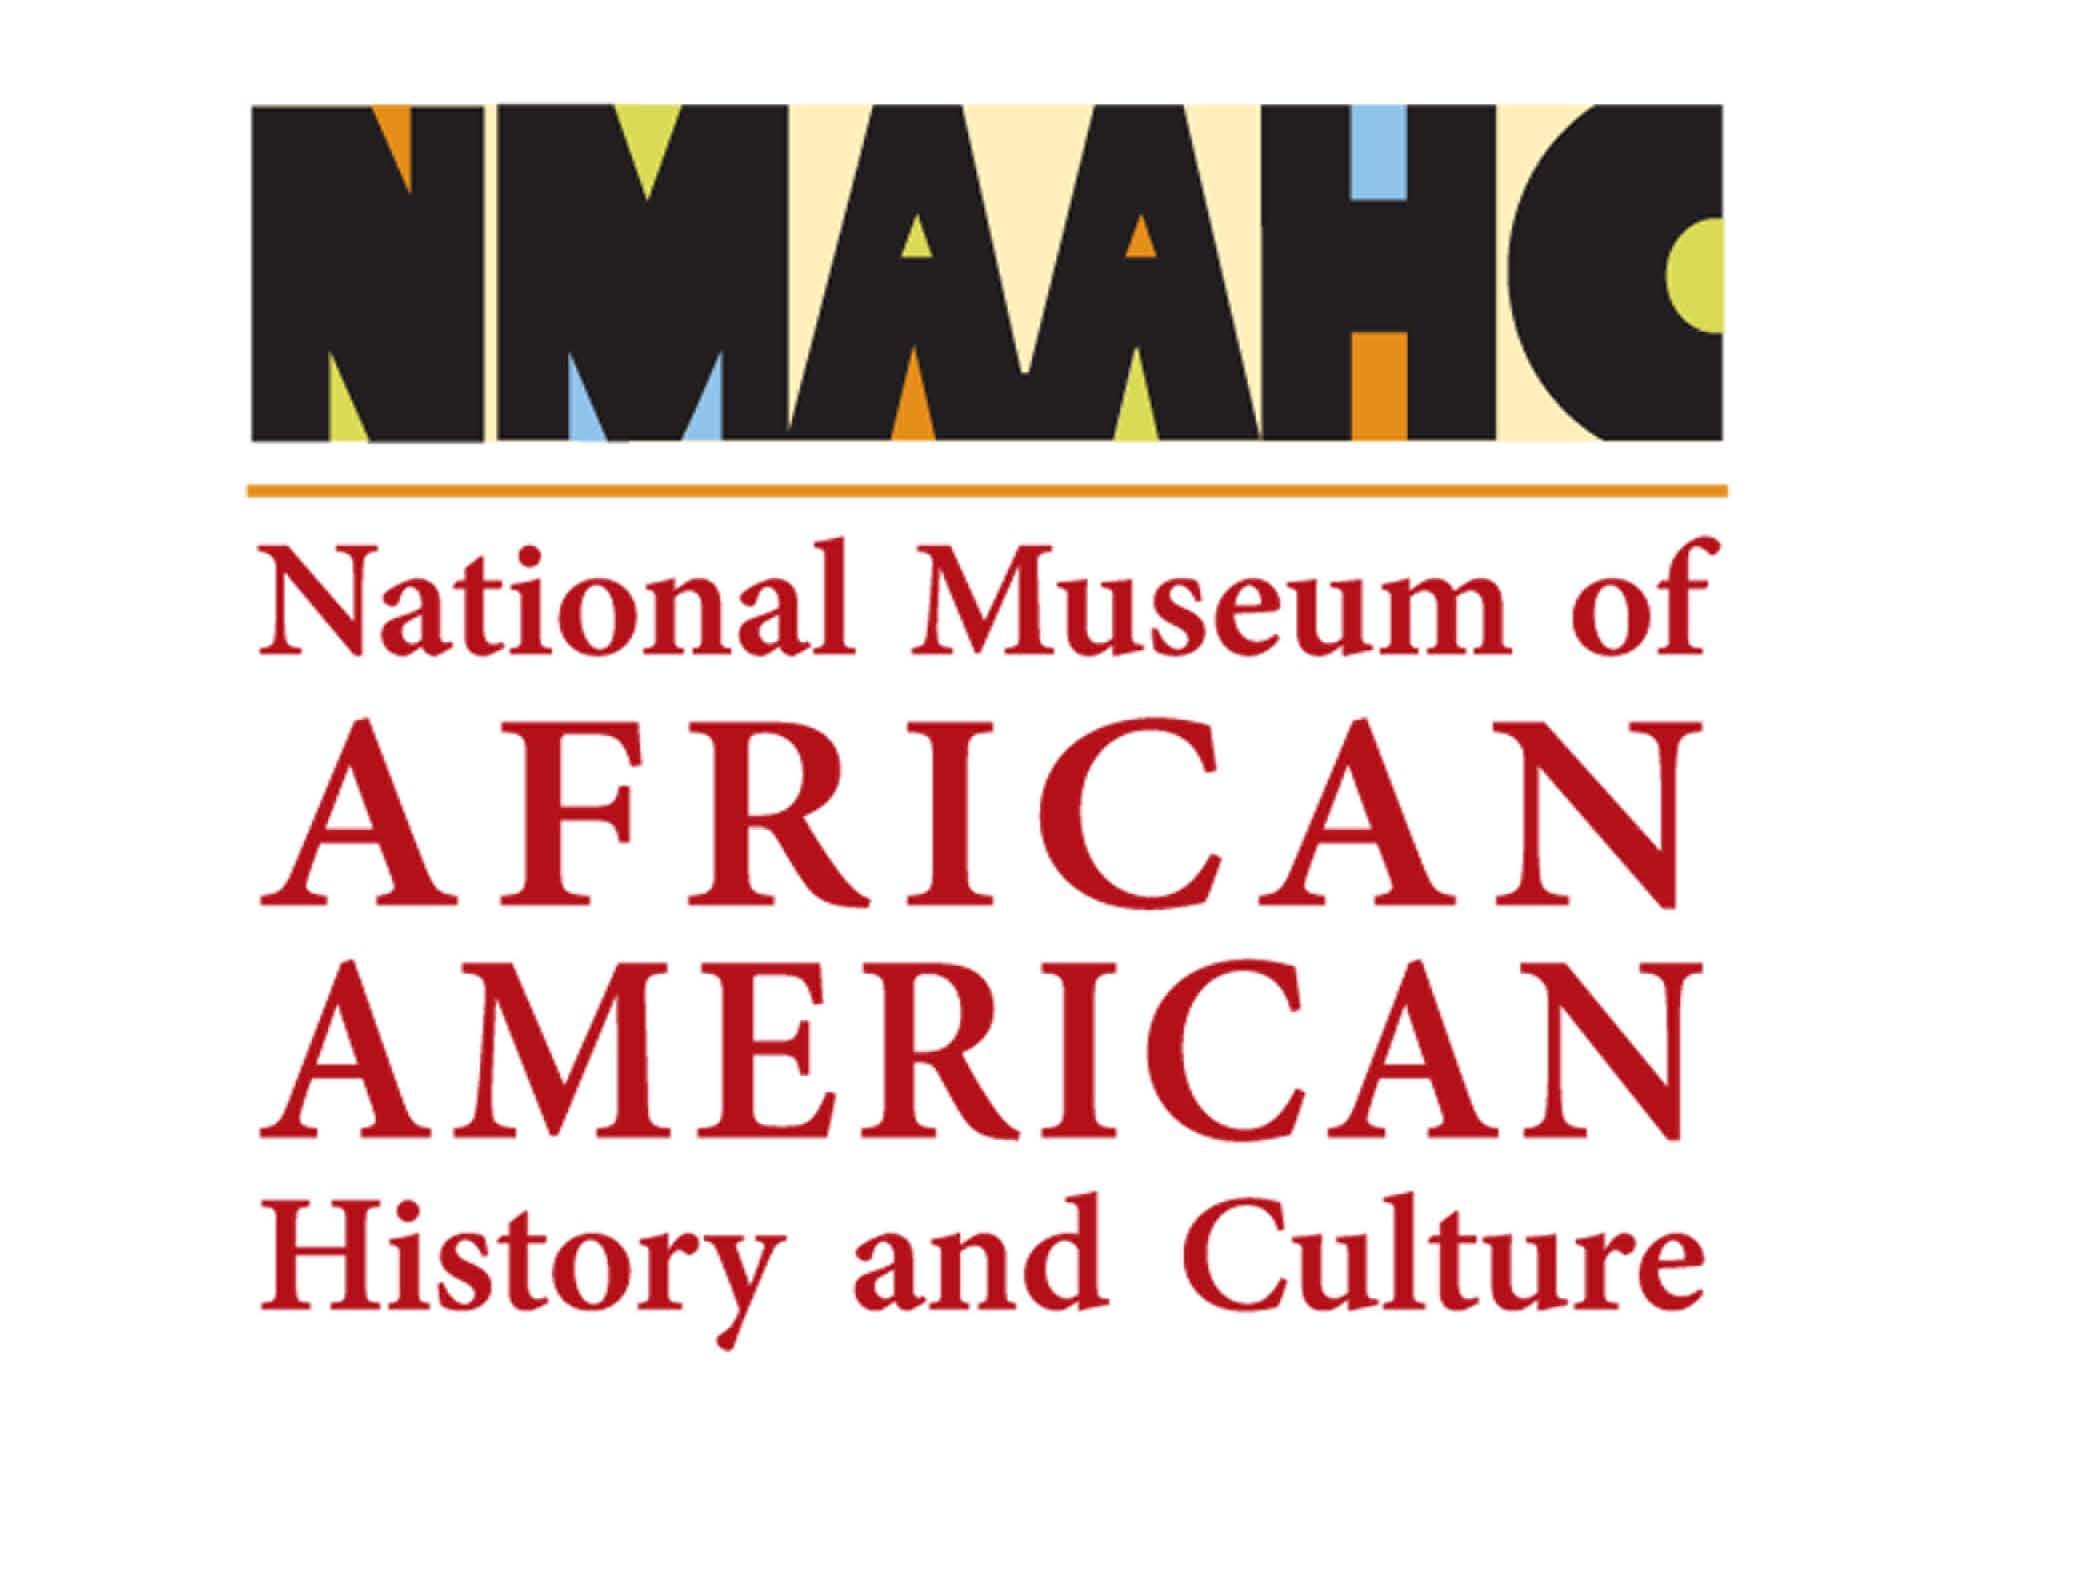 nmaahc-national-museum-of-african-american-history-and-culture